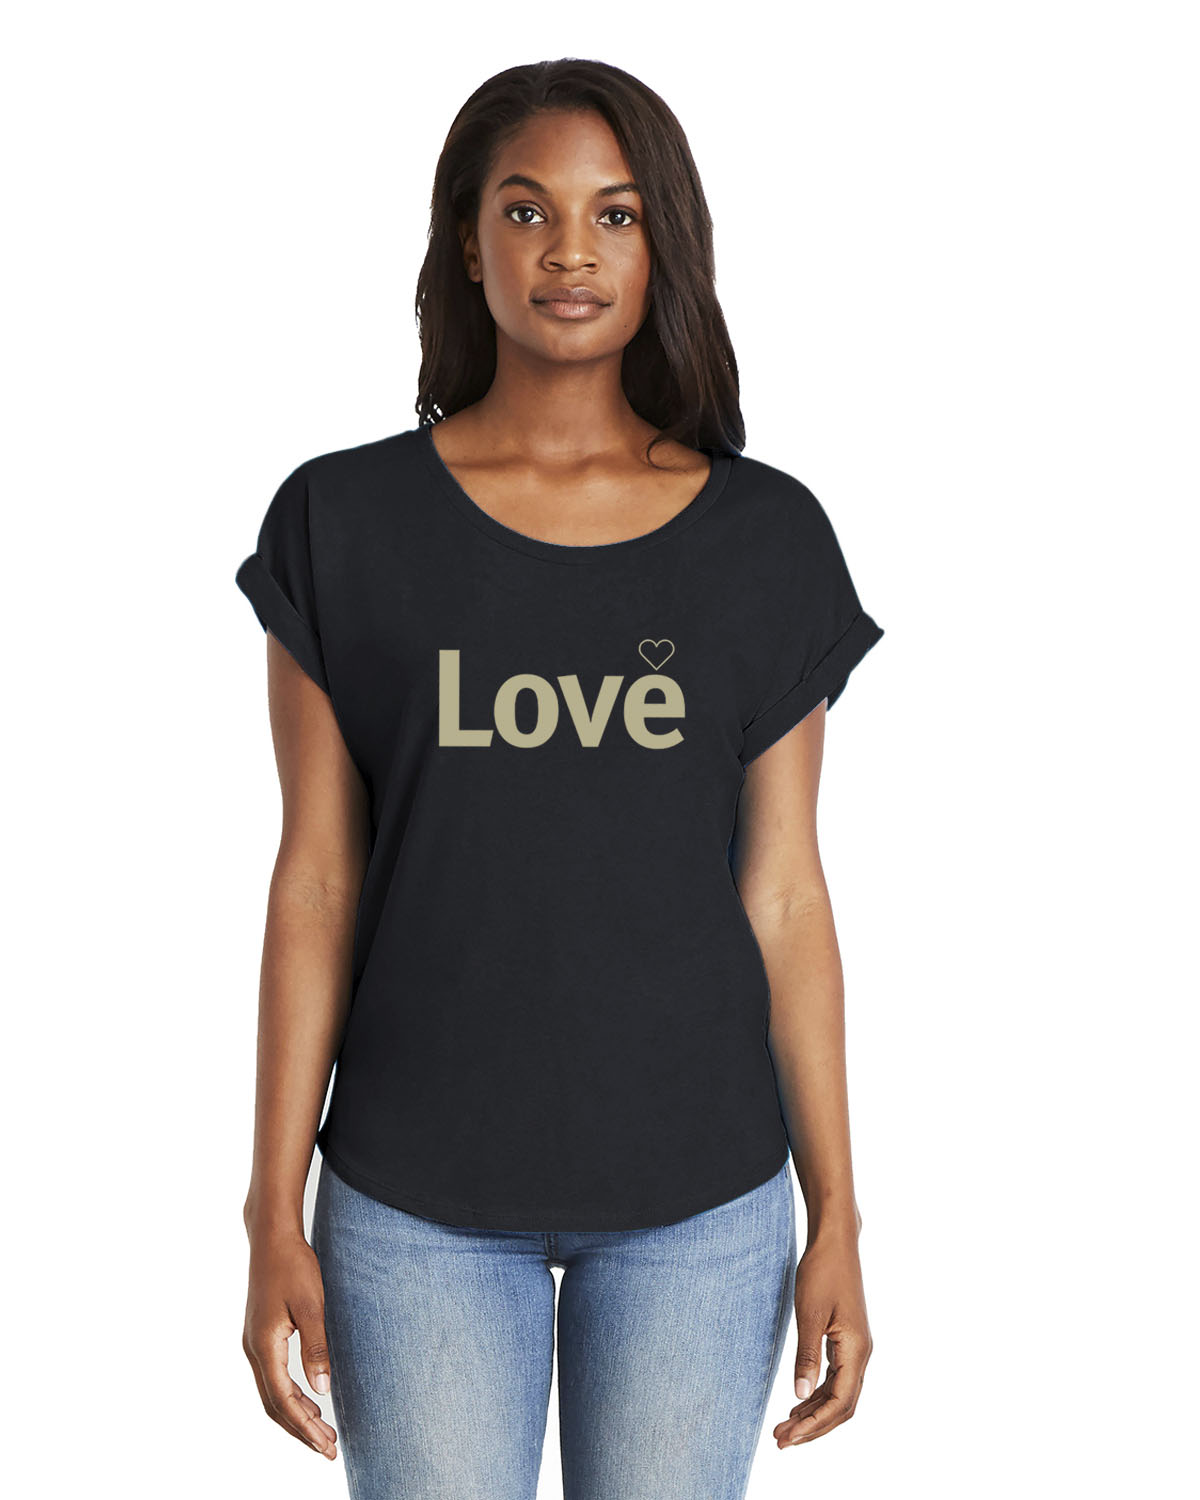 Love Dolman Sleeve T-shirt for women (black)